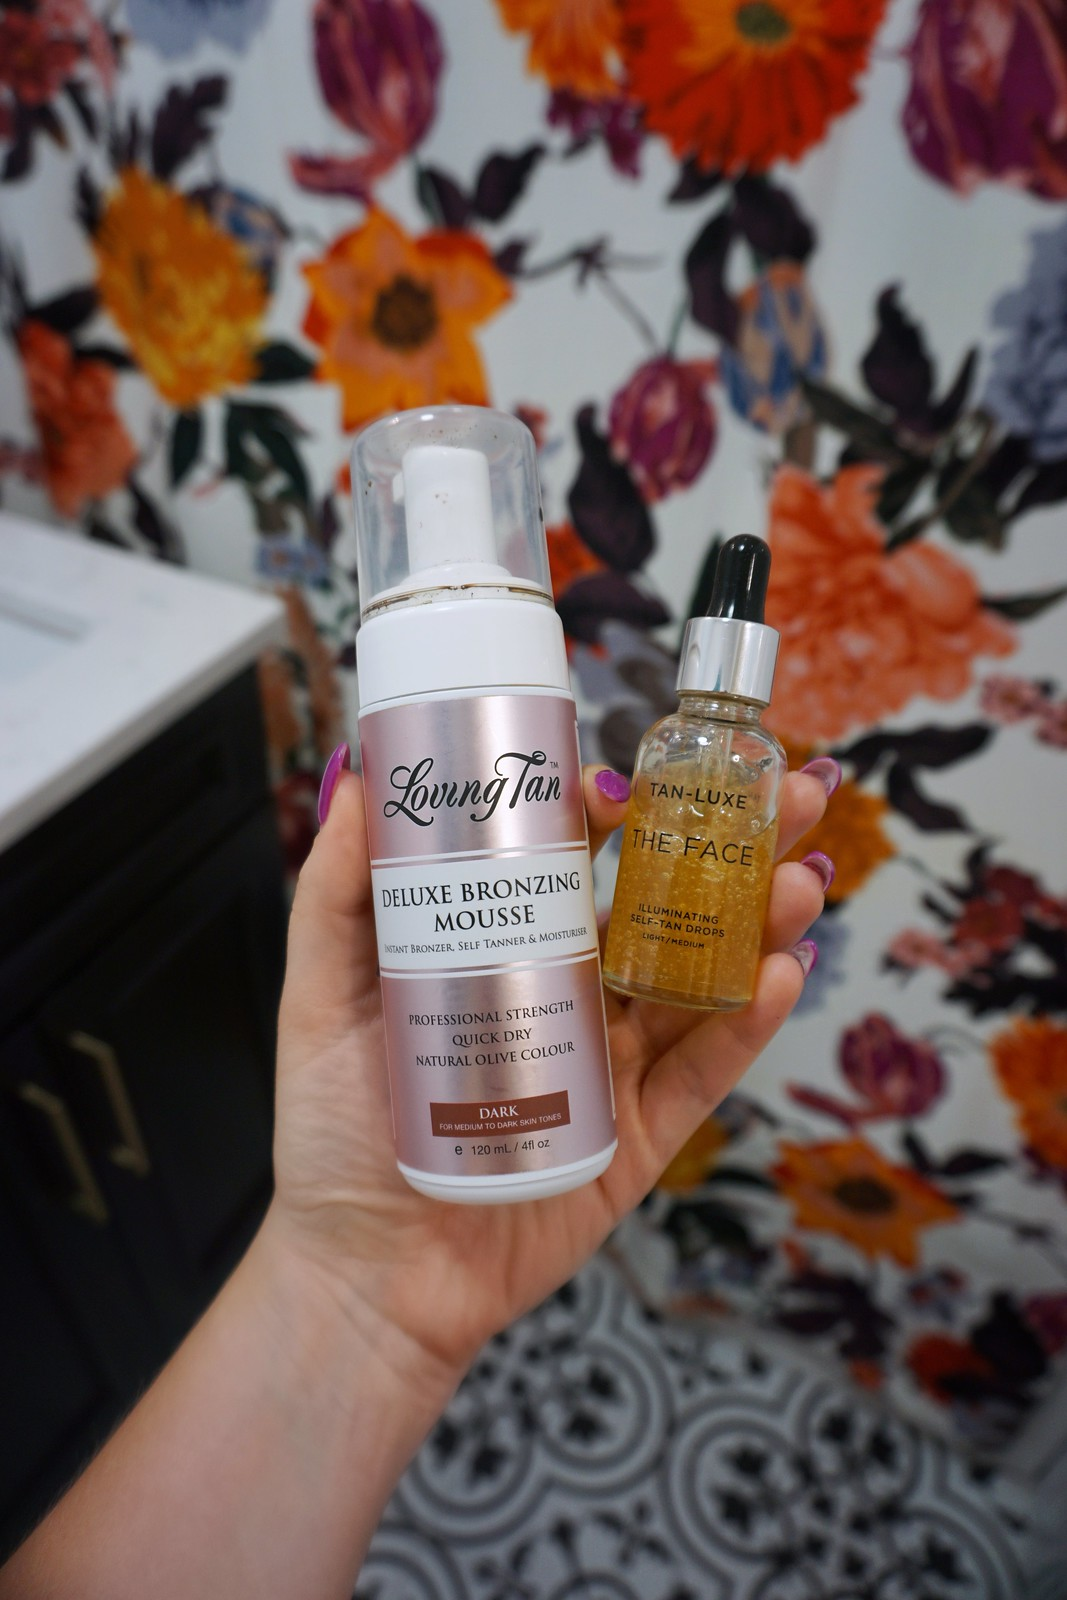 Loving Tan Deluxe Bronzing Mousse and Tan Luxe The Face